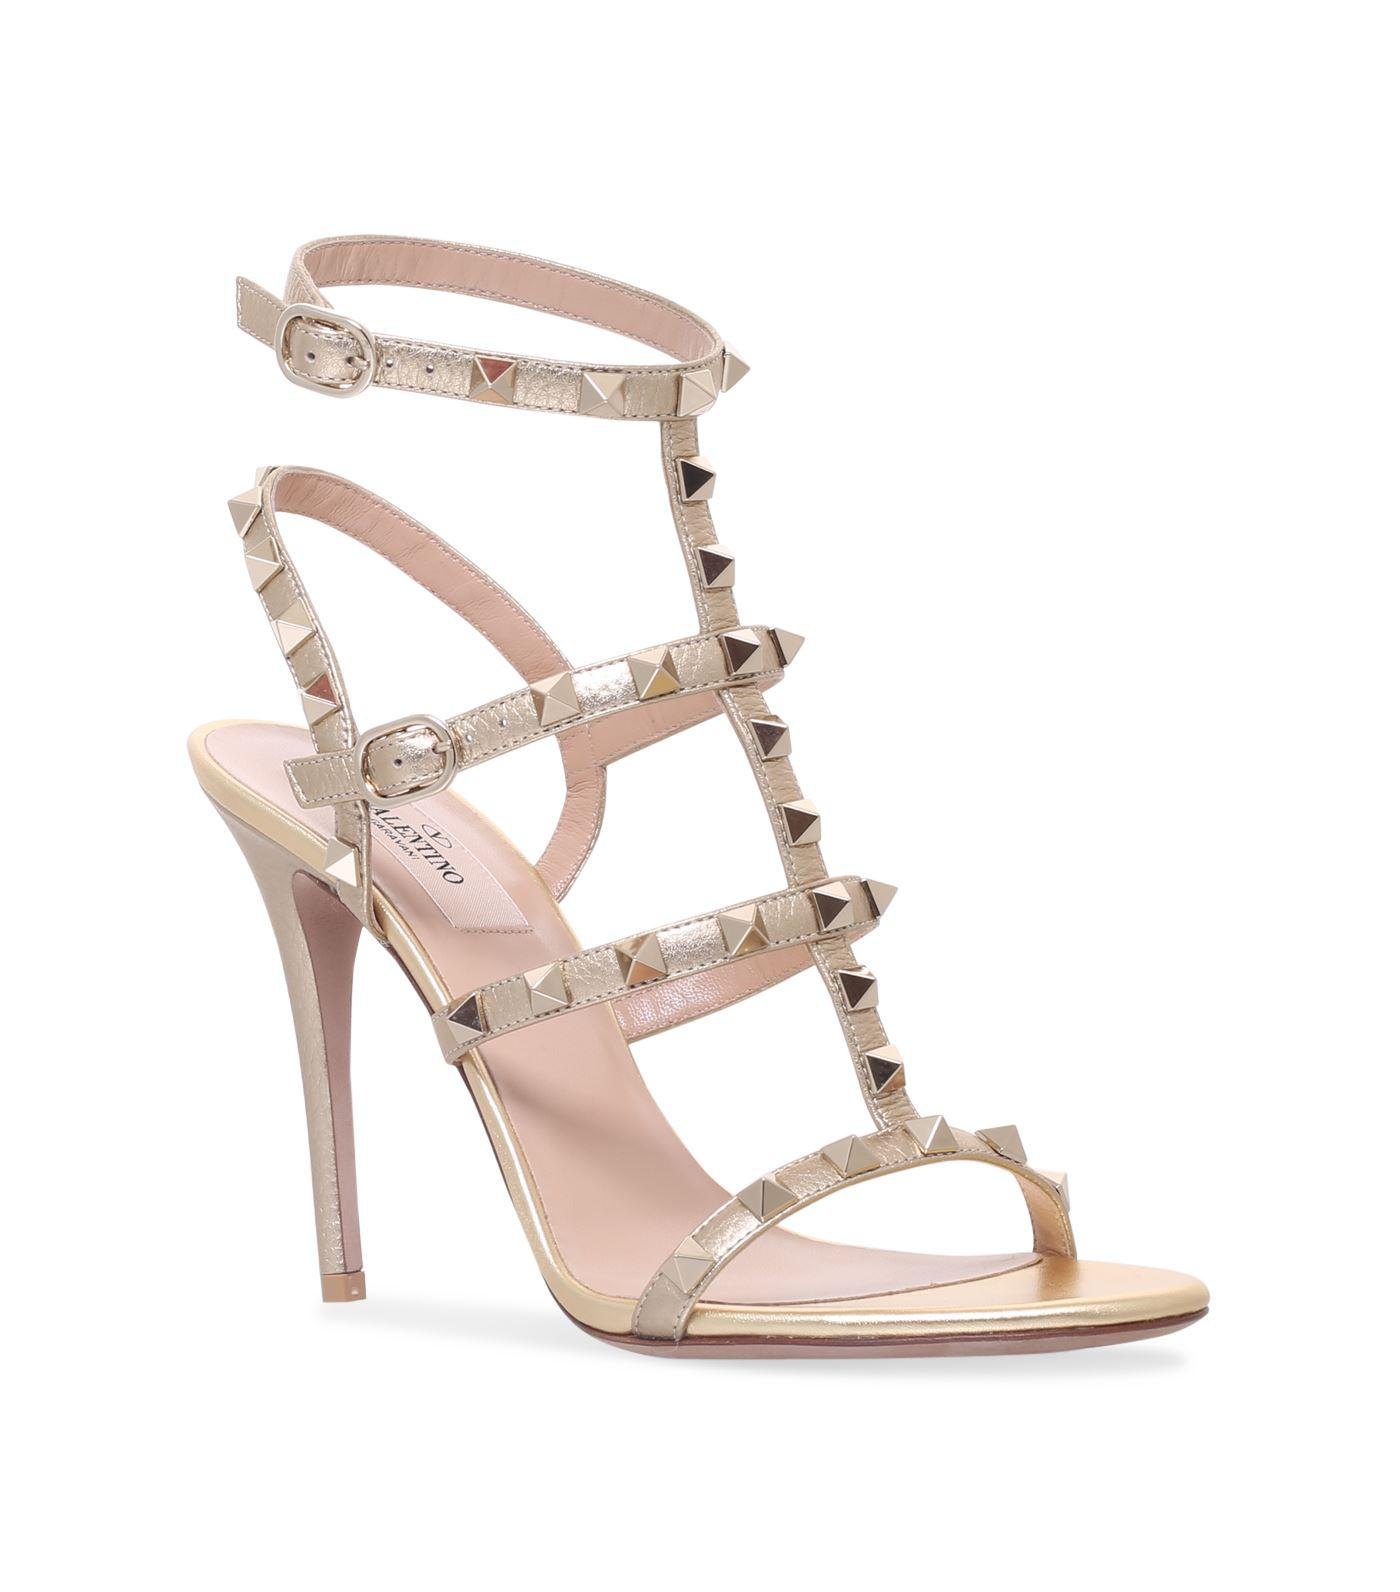 23415660e3f Lyst - Valentino Leather Rockstud Sandals 105